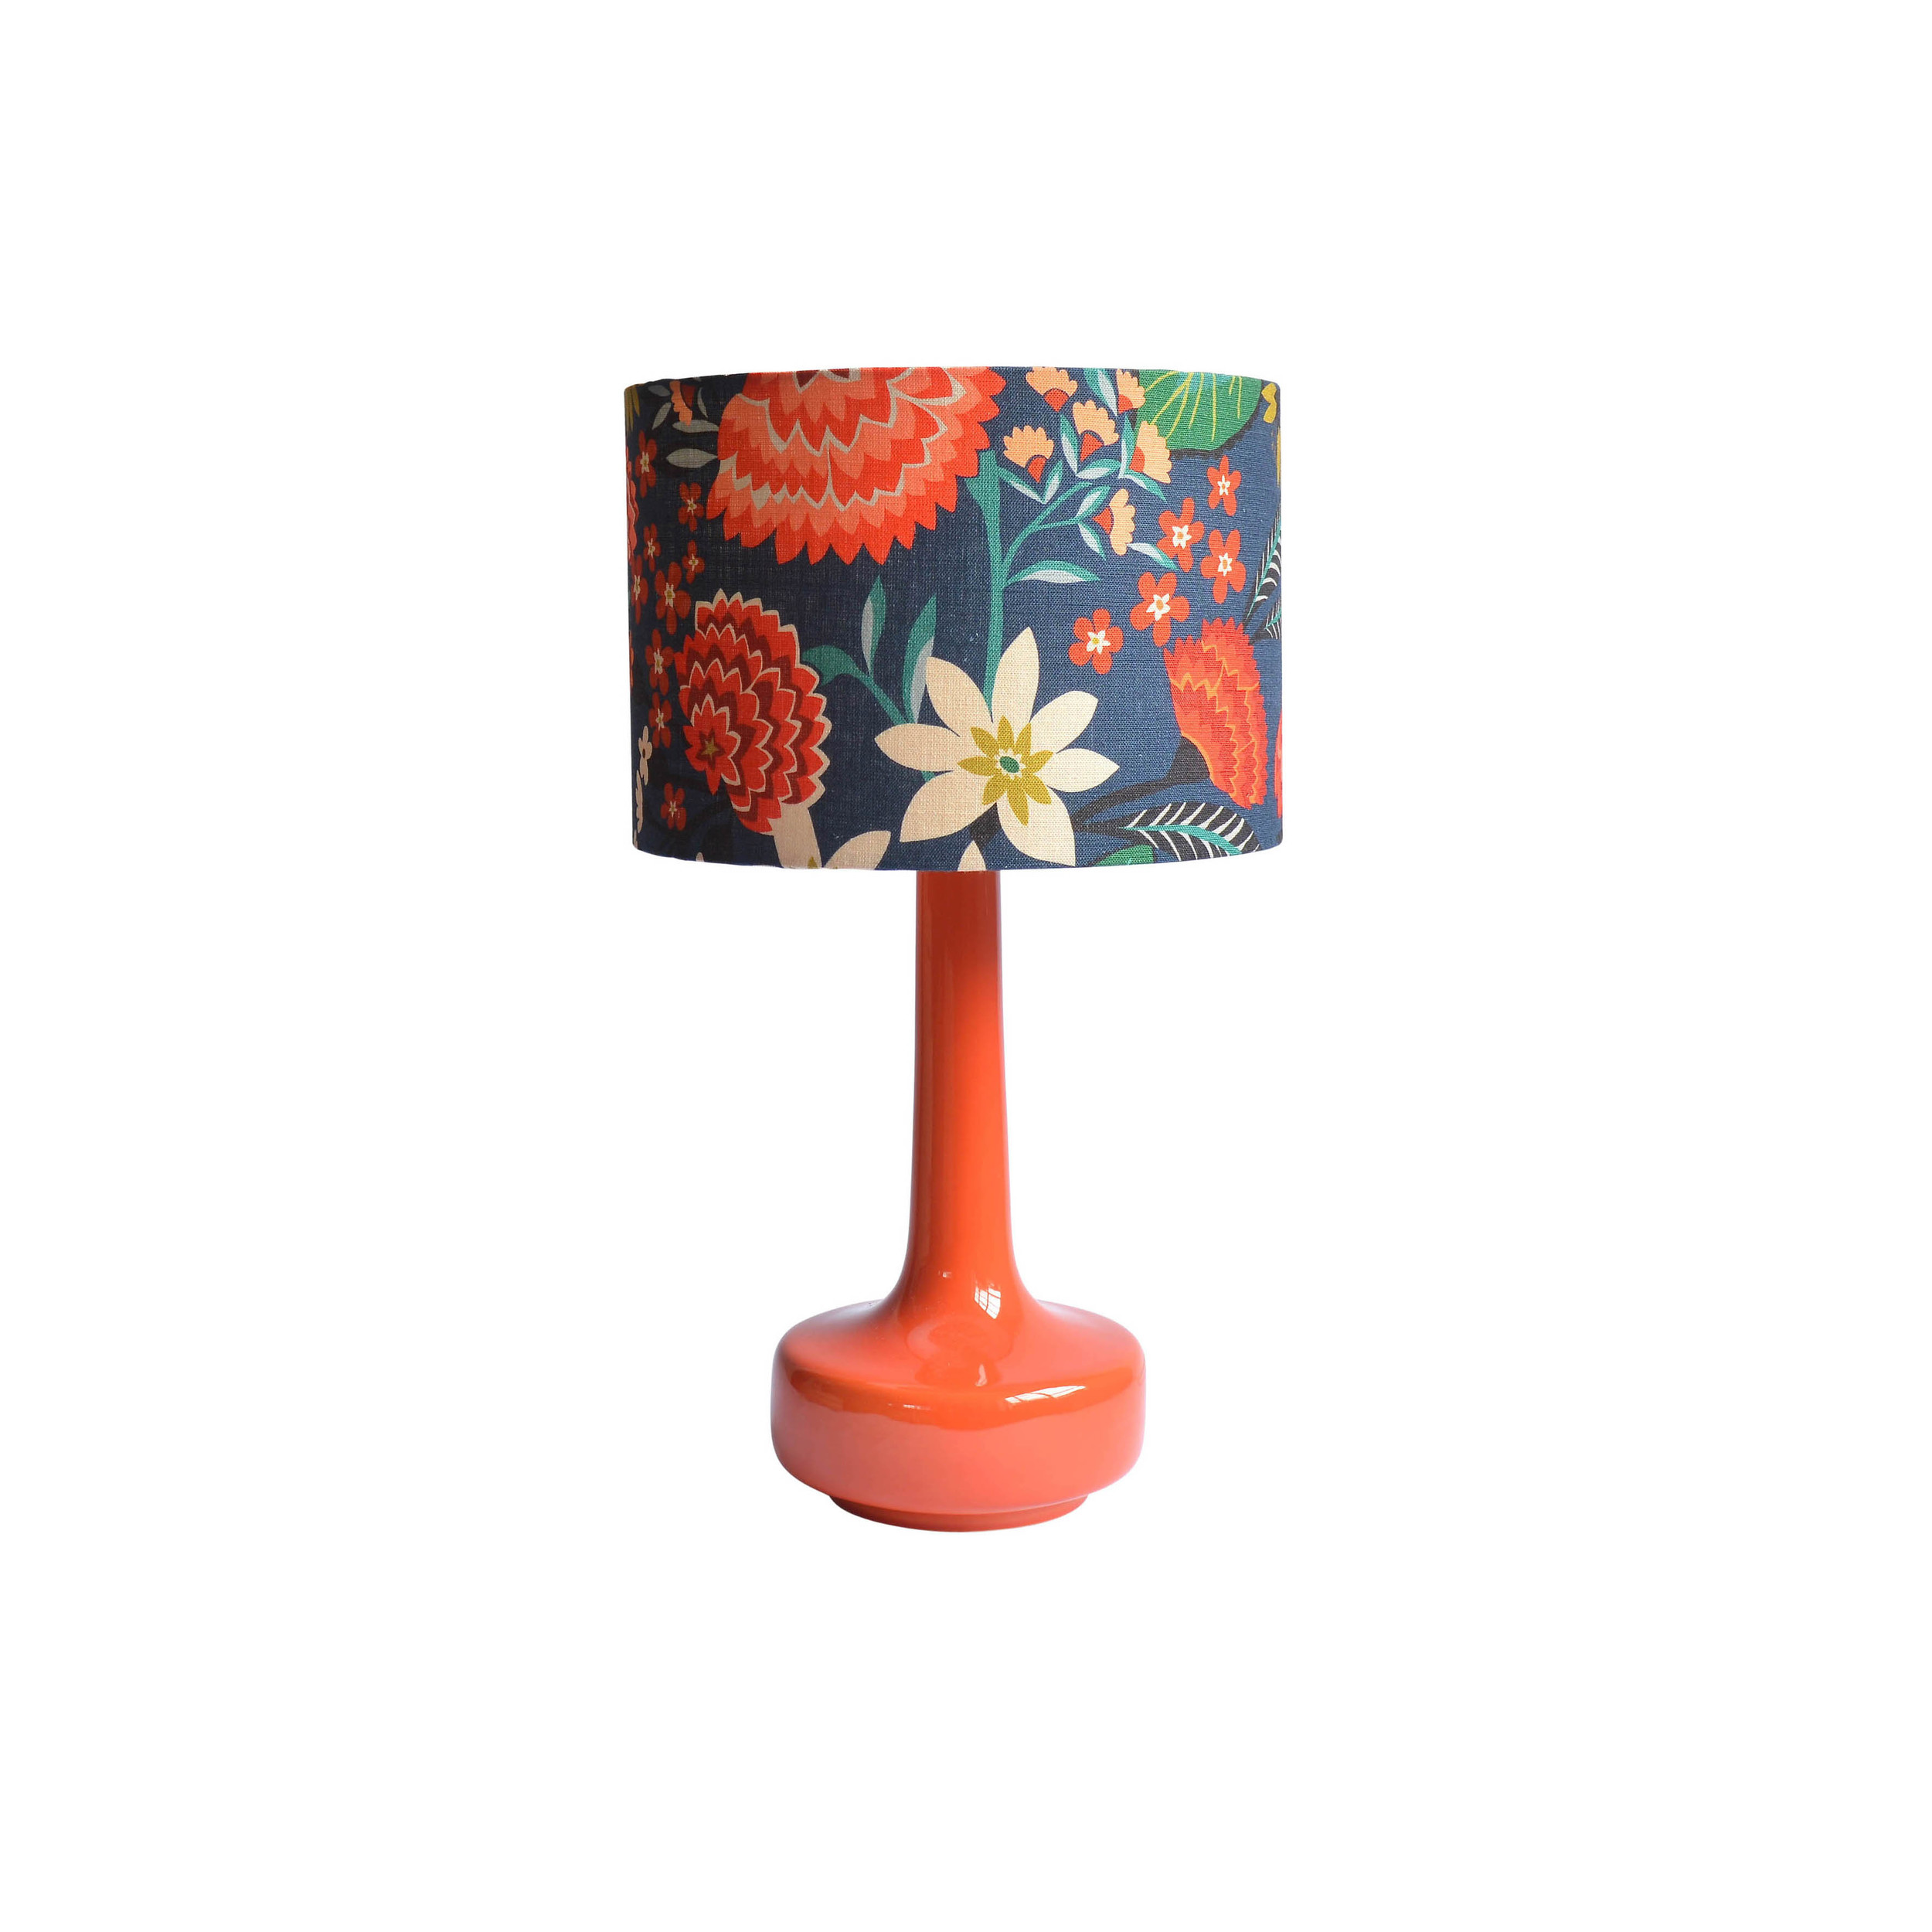 Carnation Print Lampshade for  Winter's Moon    © Brie Harrison 2015